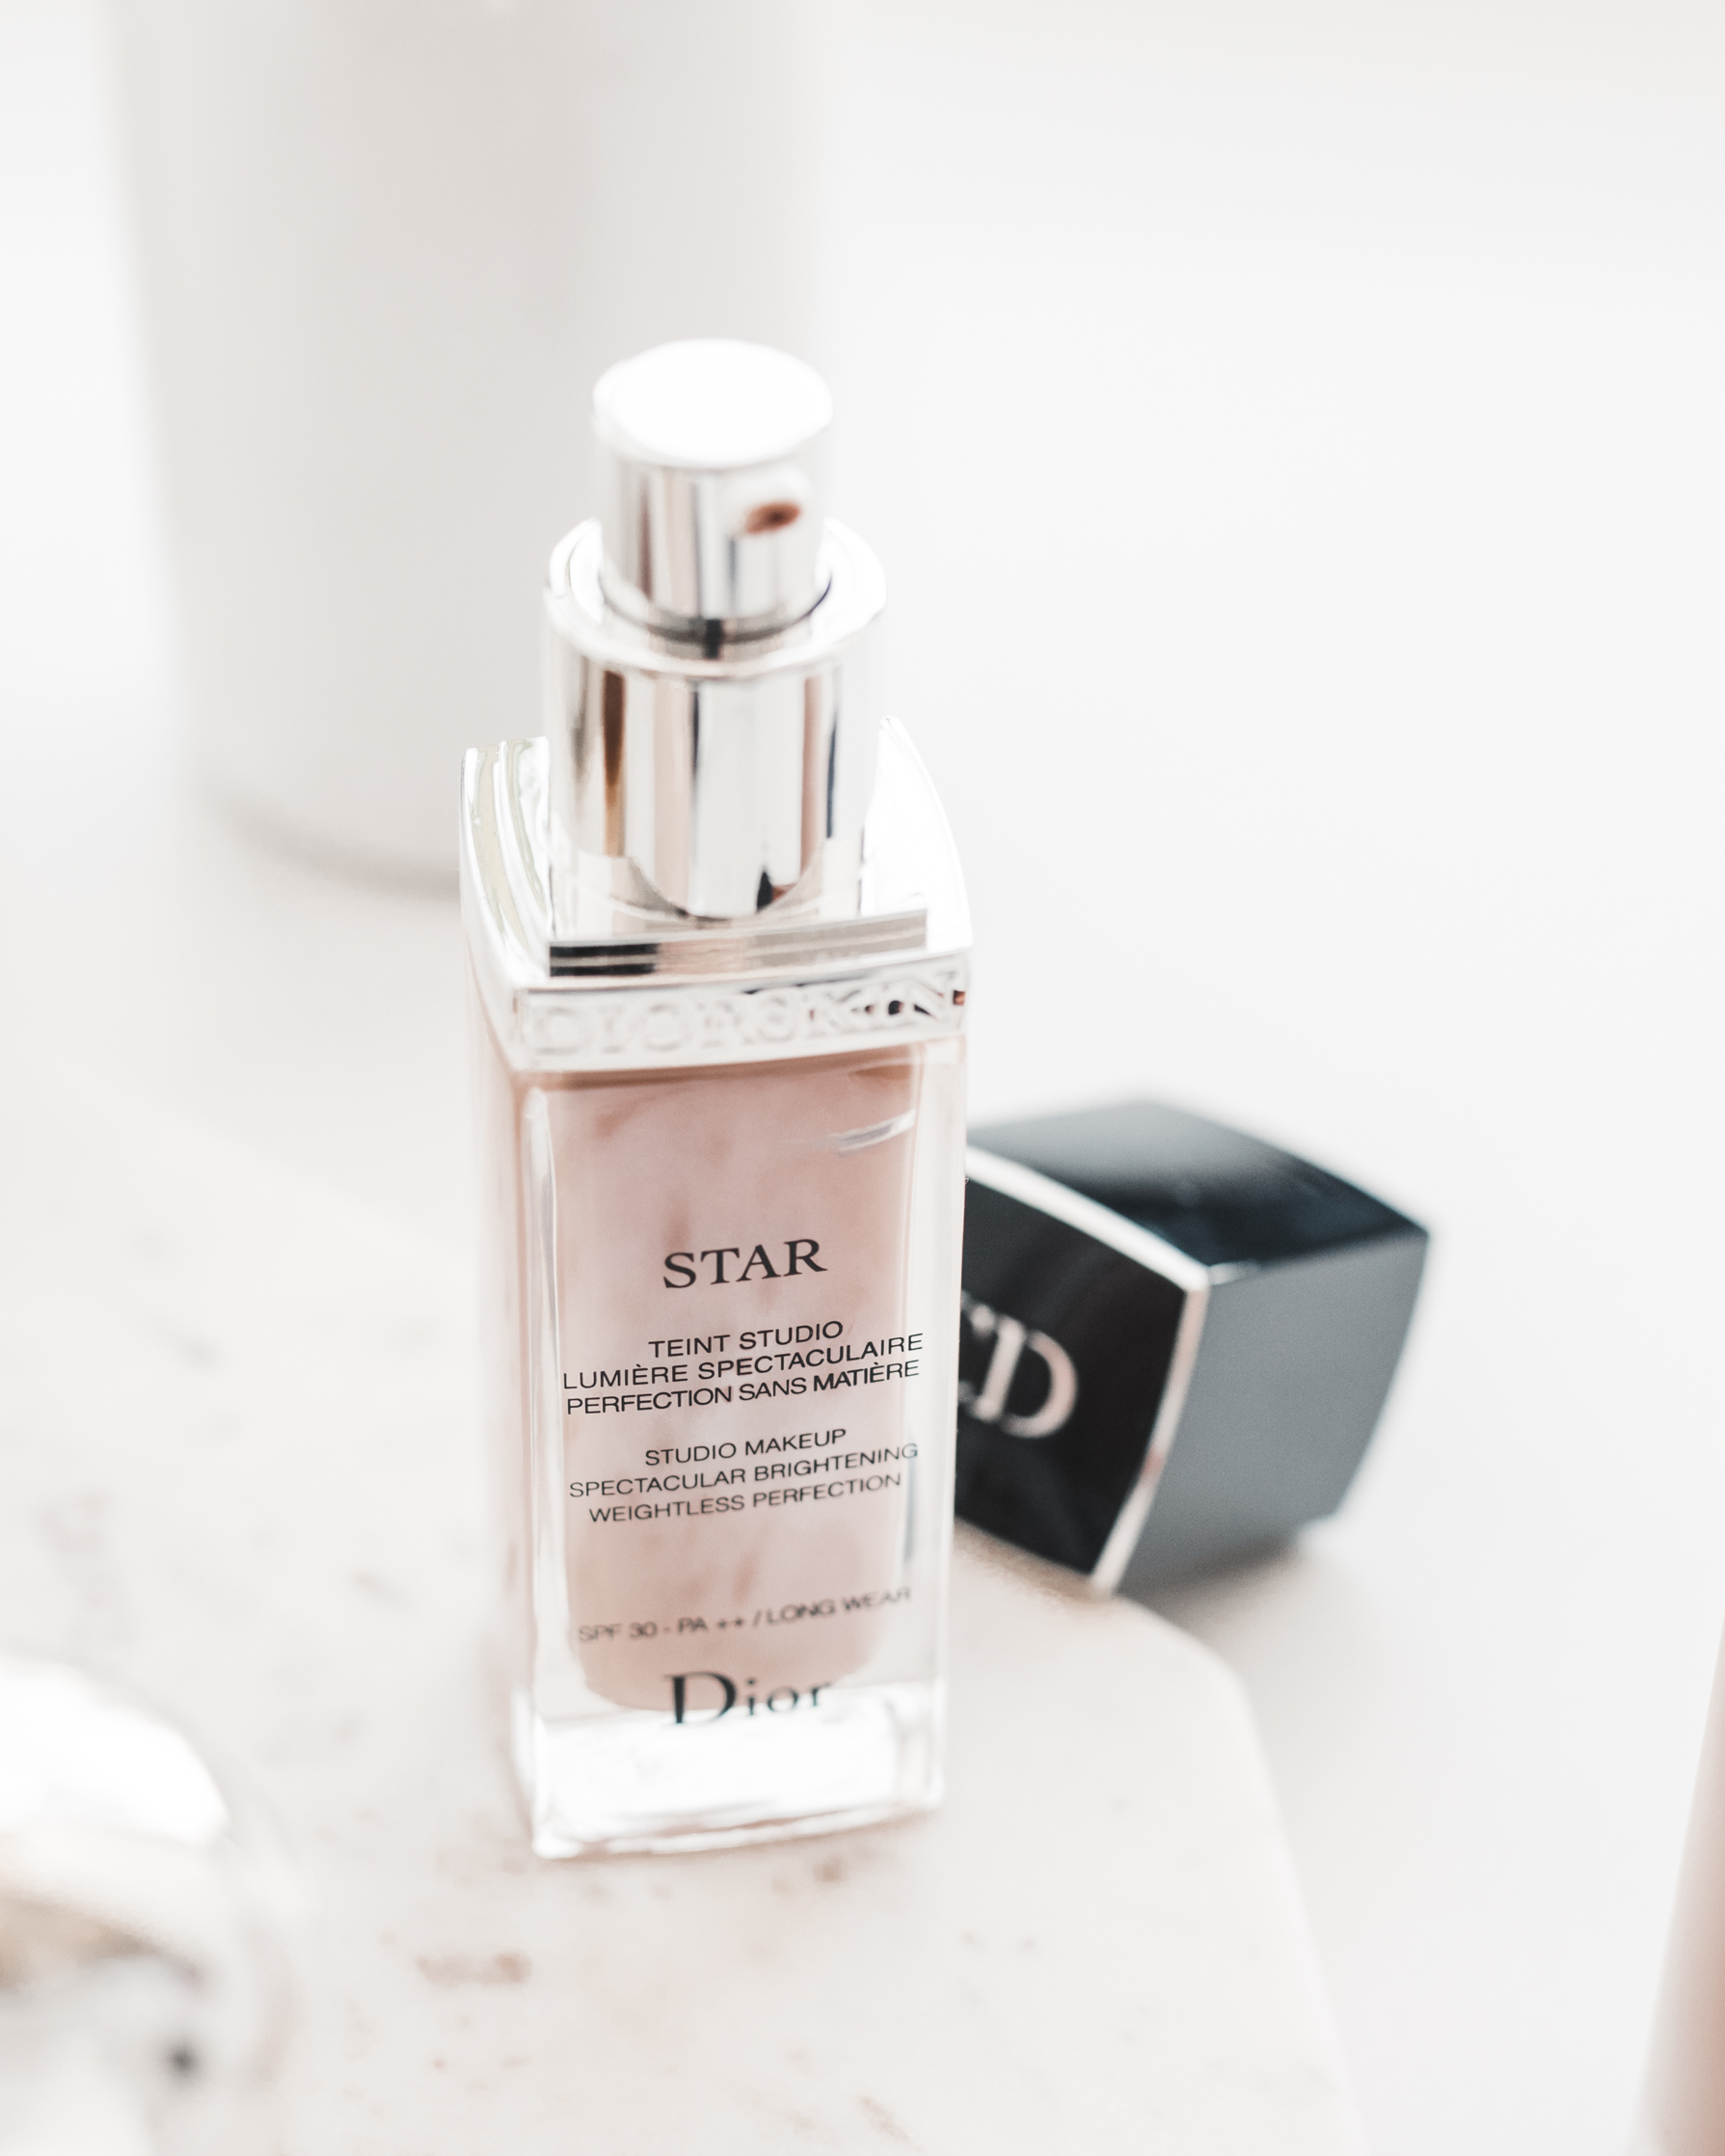 Dior - Star Fluid Foundation